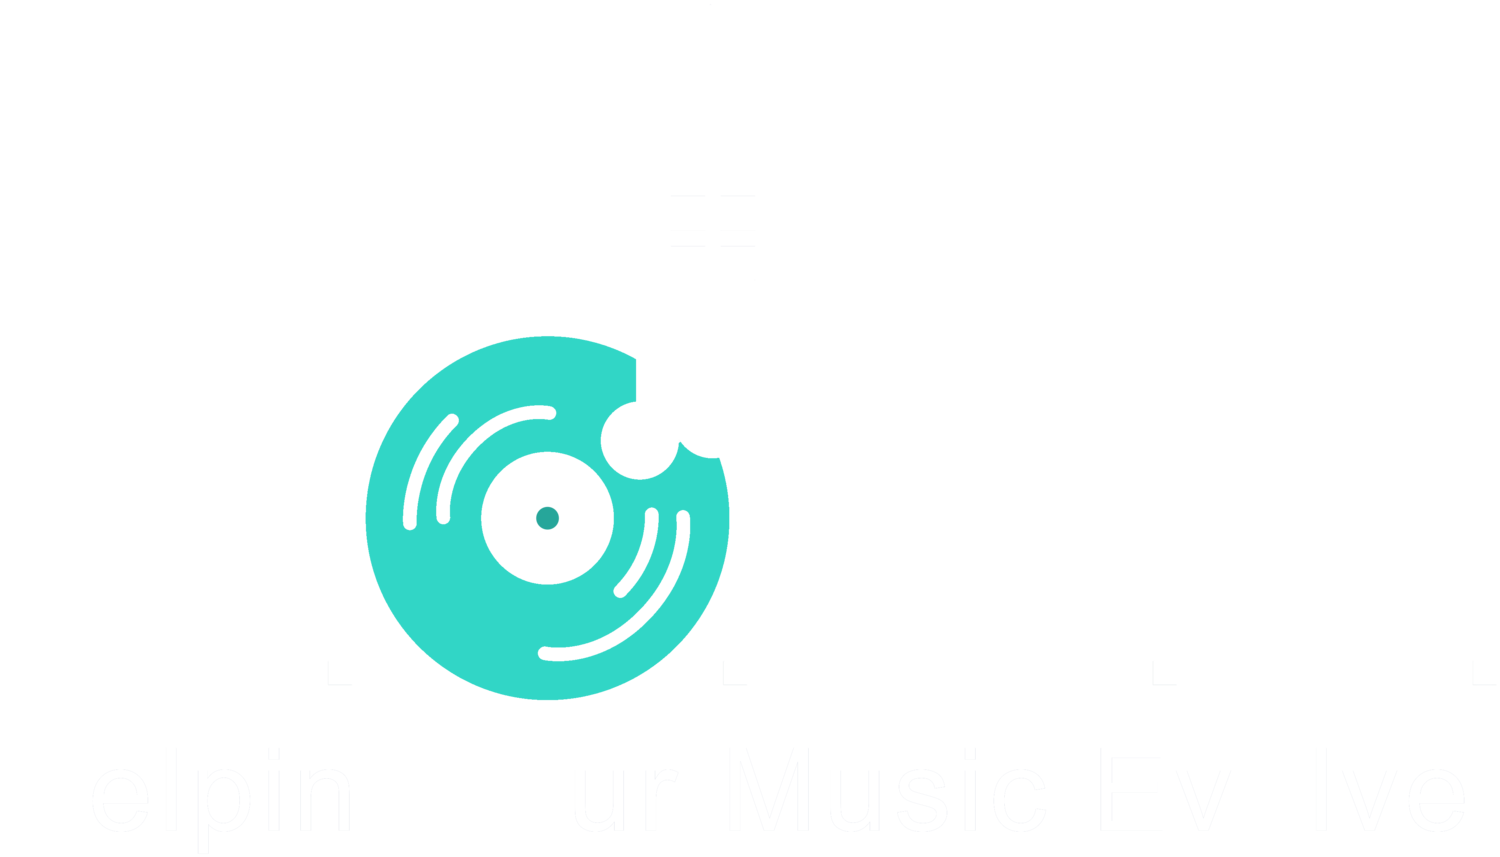 Helping Our Music Evolve (H.O.M.E.)